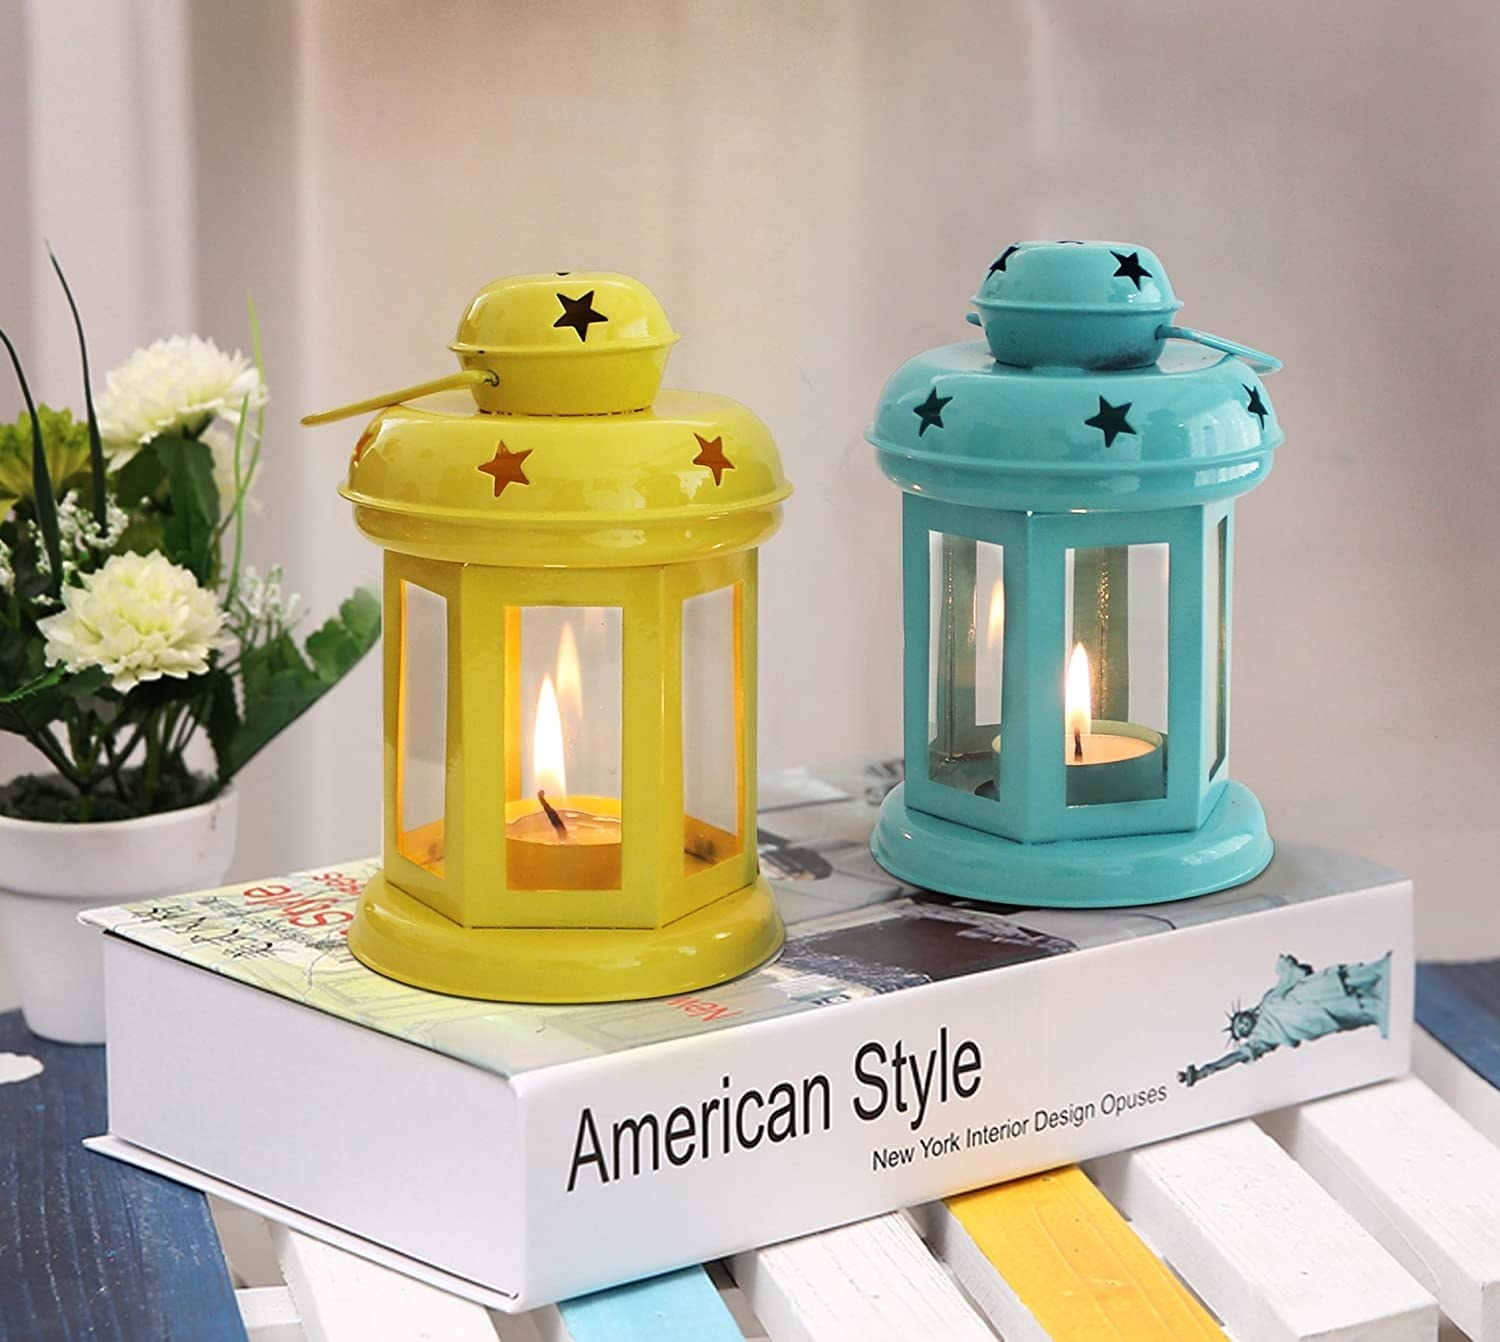 Yellow and turquoise lanterns kept on a book